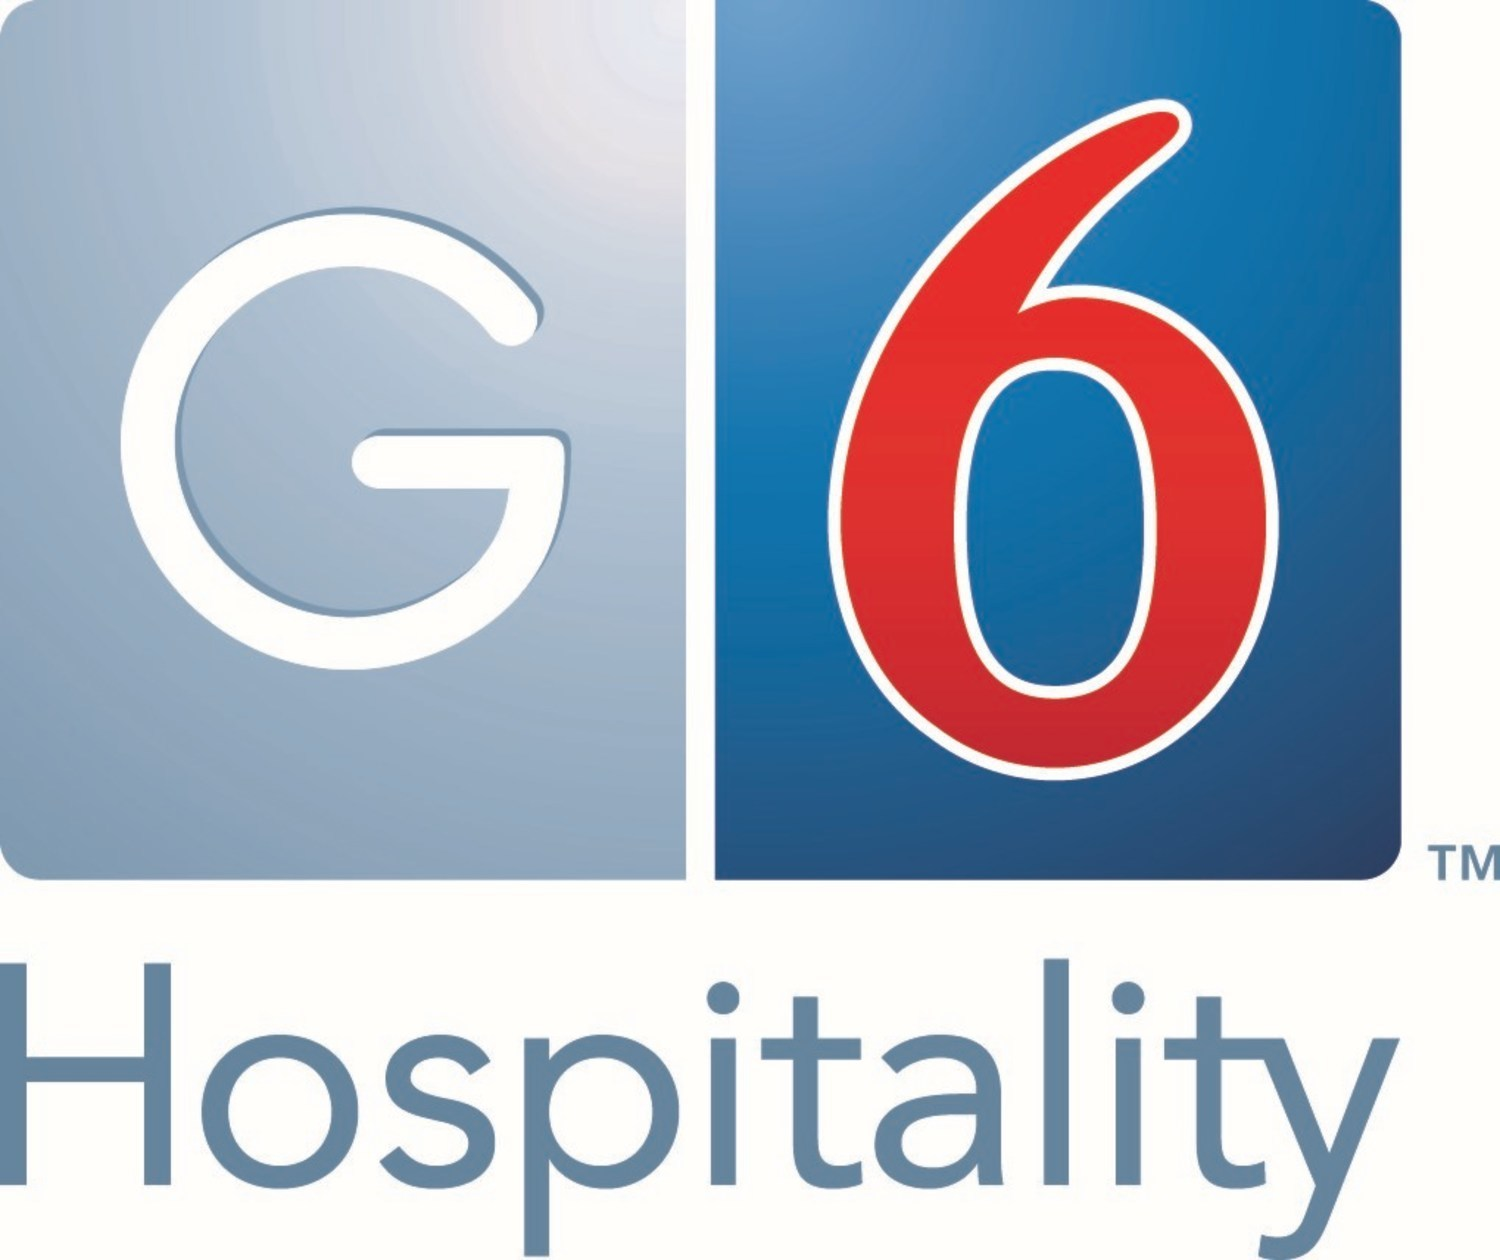 G6 Hospitality Unveils First New-Construction, Dual-Brand